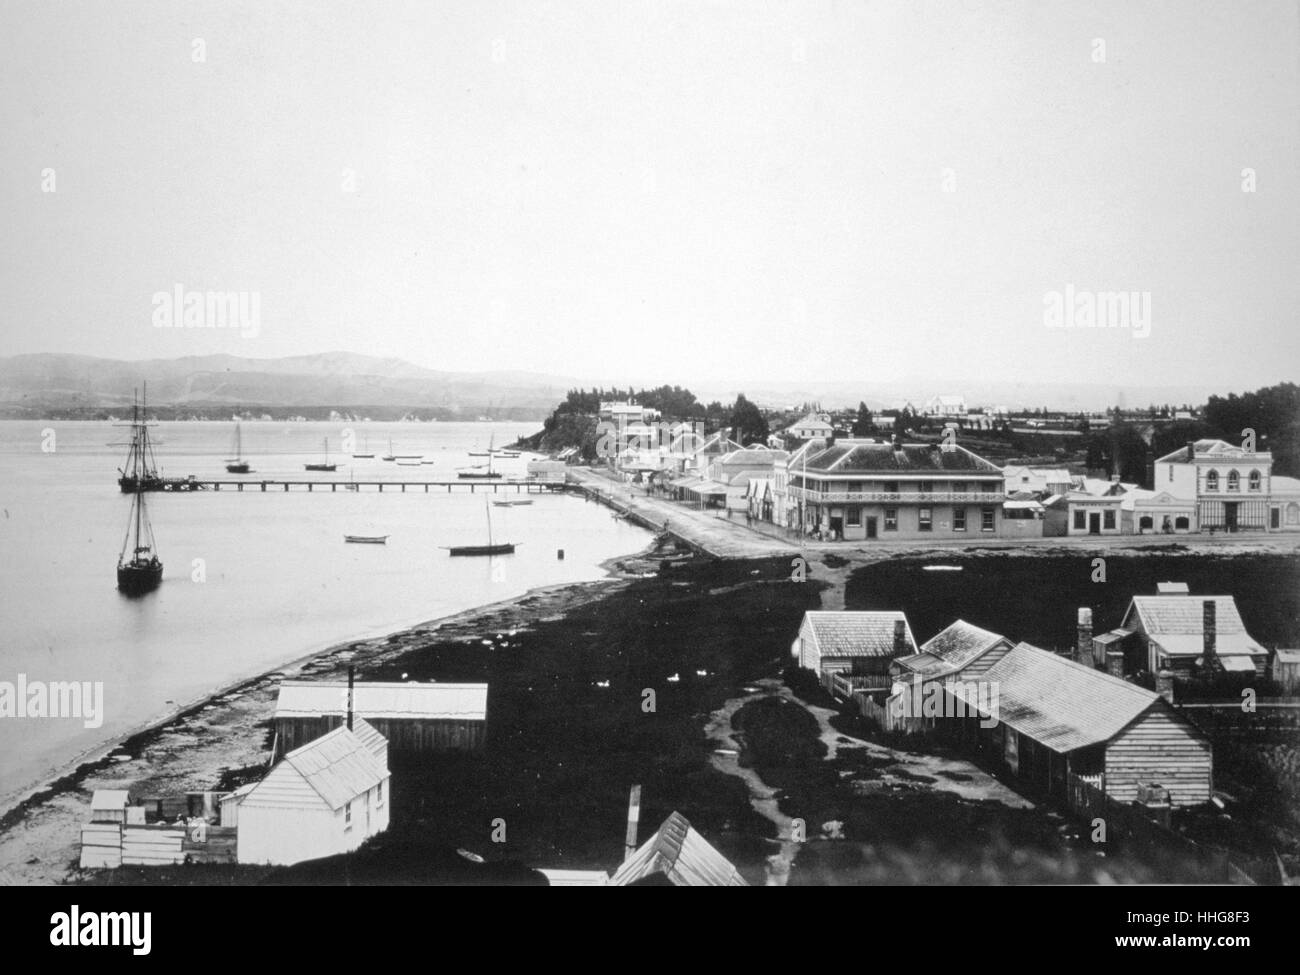 Tauranga is the most populous city in the Bay of Plenty Region of the North Island of New Zealand - Stock Image